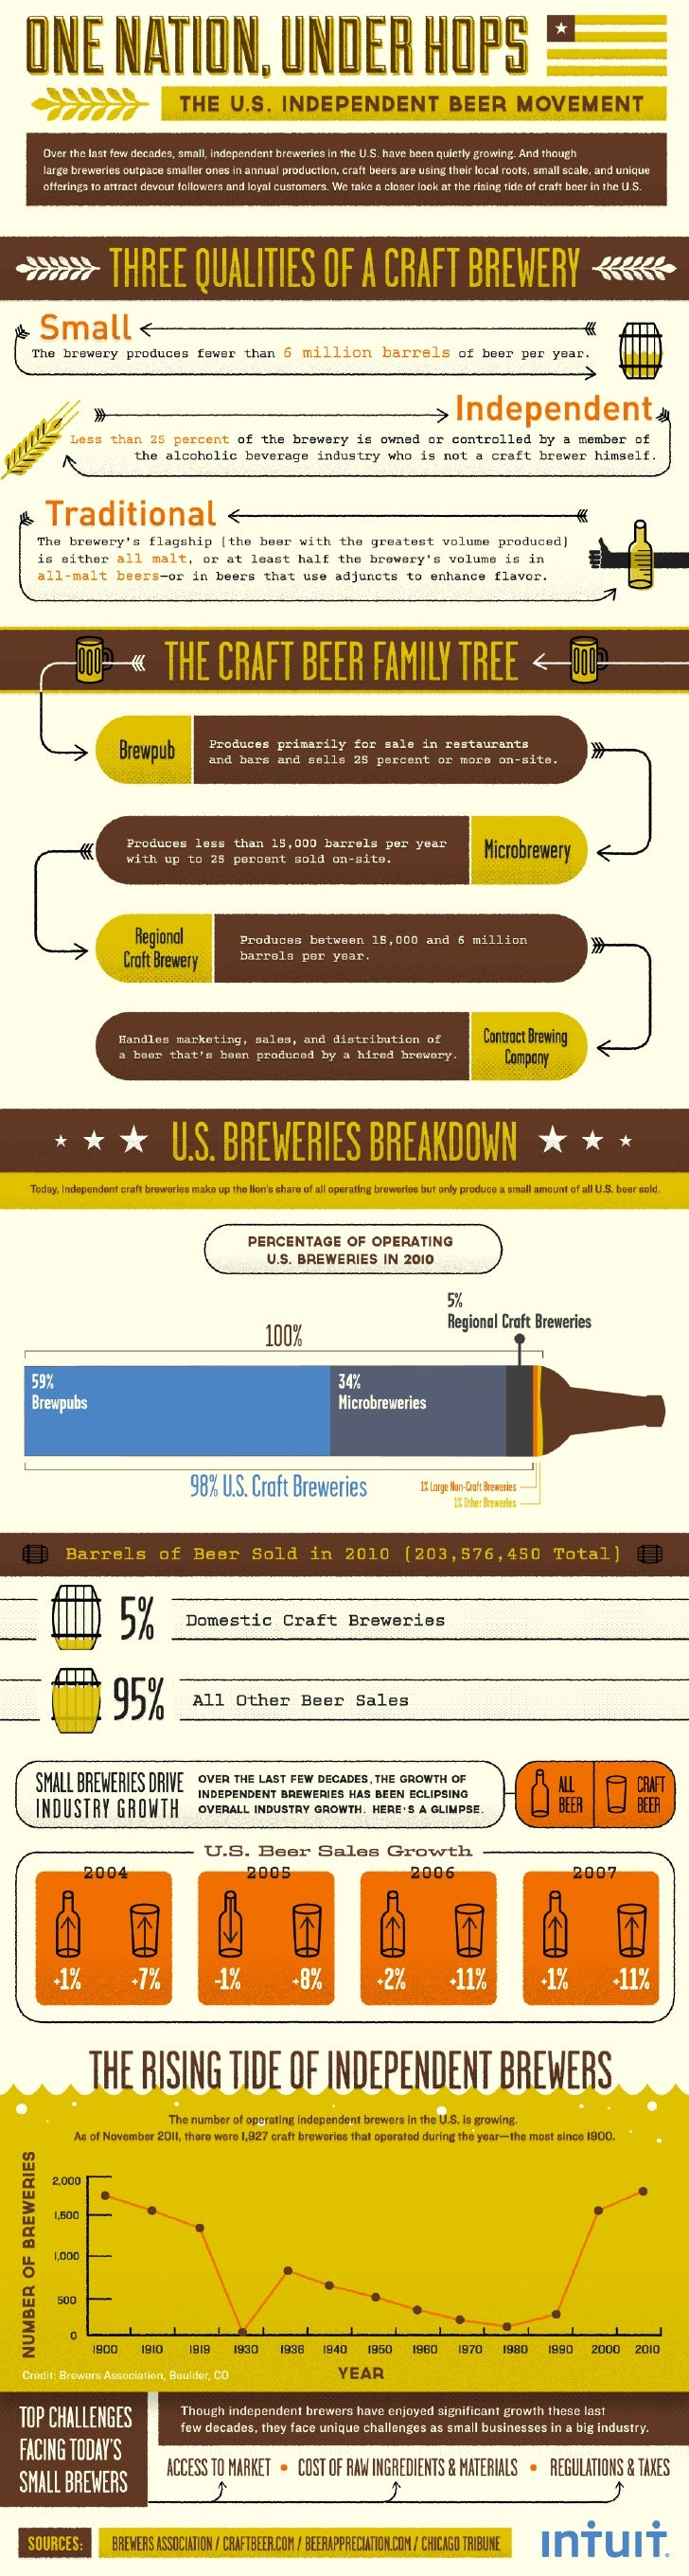 How Indie Brewers are Outpacing Beer Industry Growth